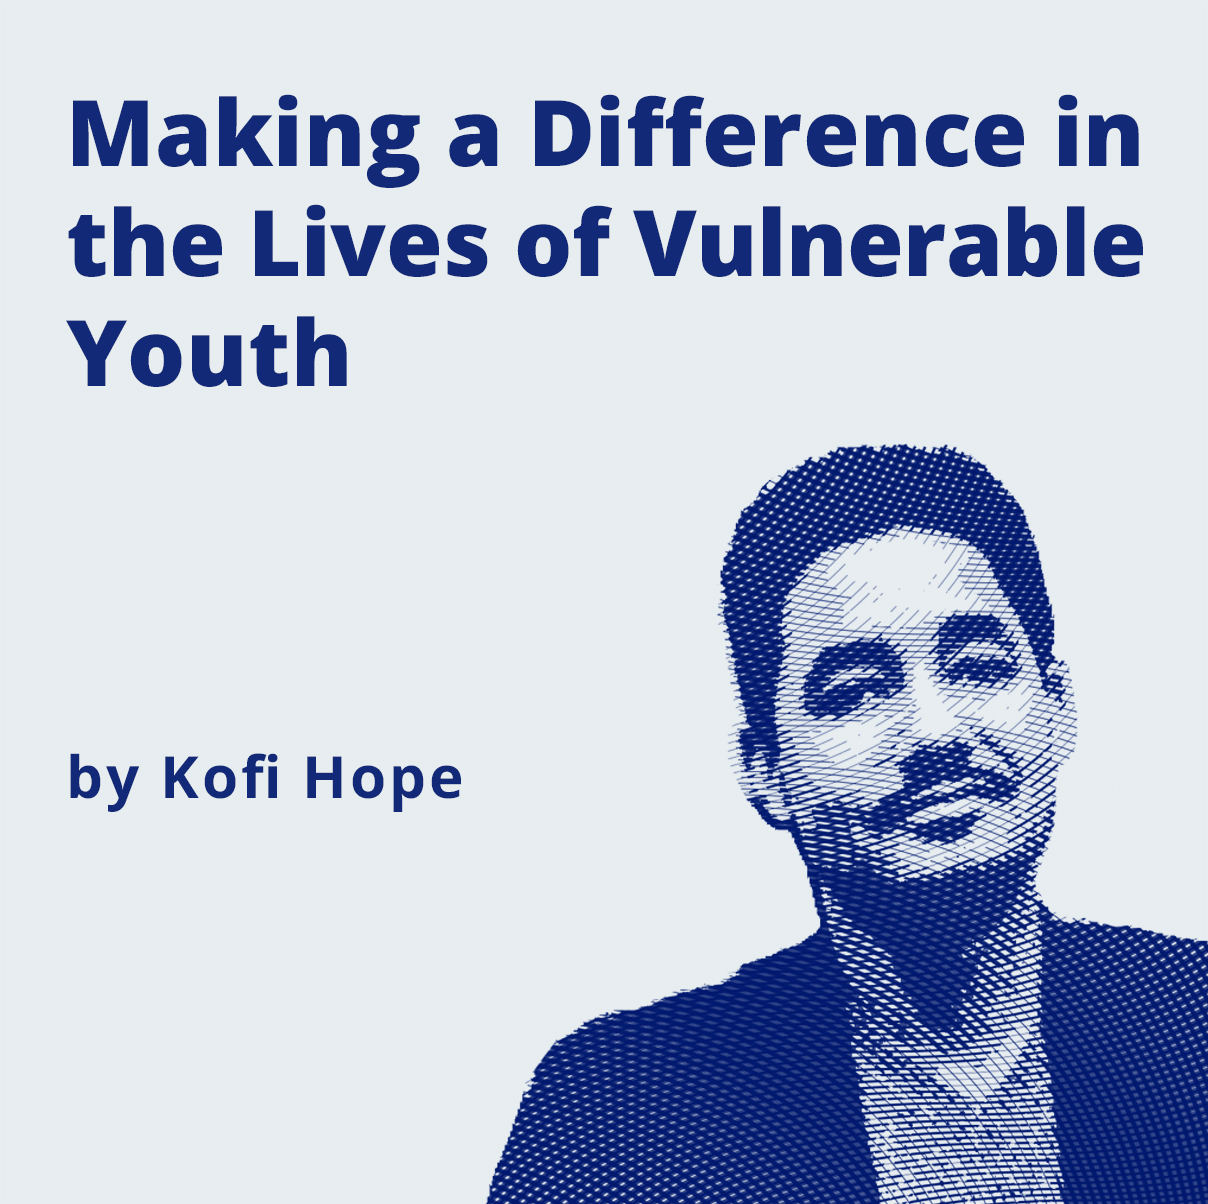 Image -  Making a Difference in the Lives of Vulnerable Youth by Kofi Hope